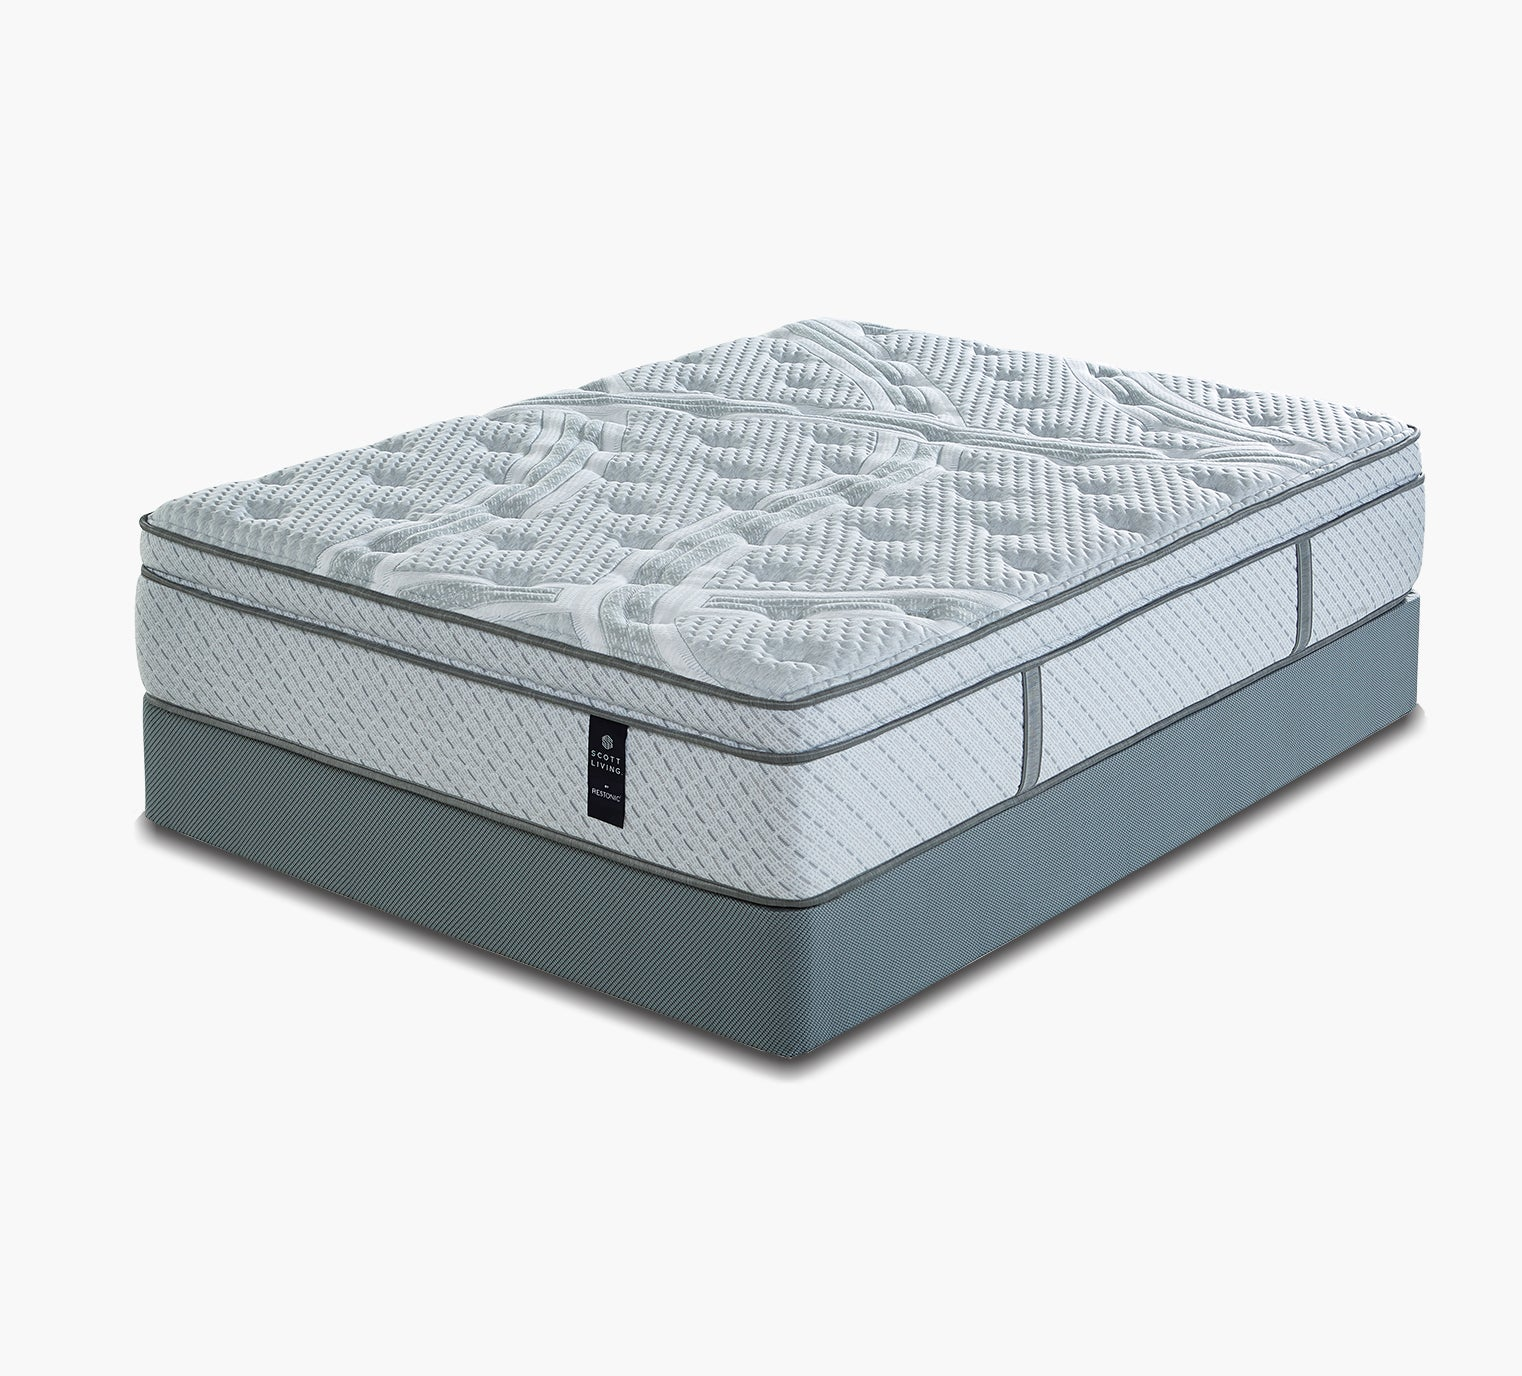 Scott Living Oakwood Plush Euro Top Queen Mattress Kane S Furniture,Comfort Room Cleaning Teenager Bedroom Cleaning Checklist